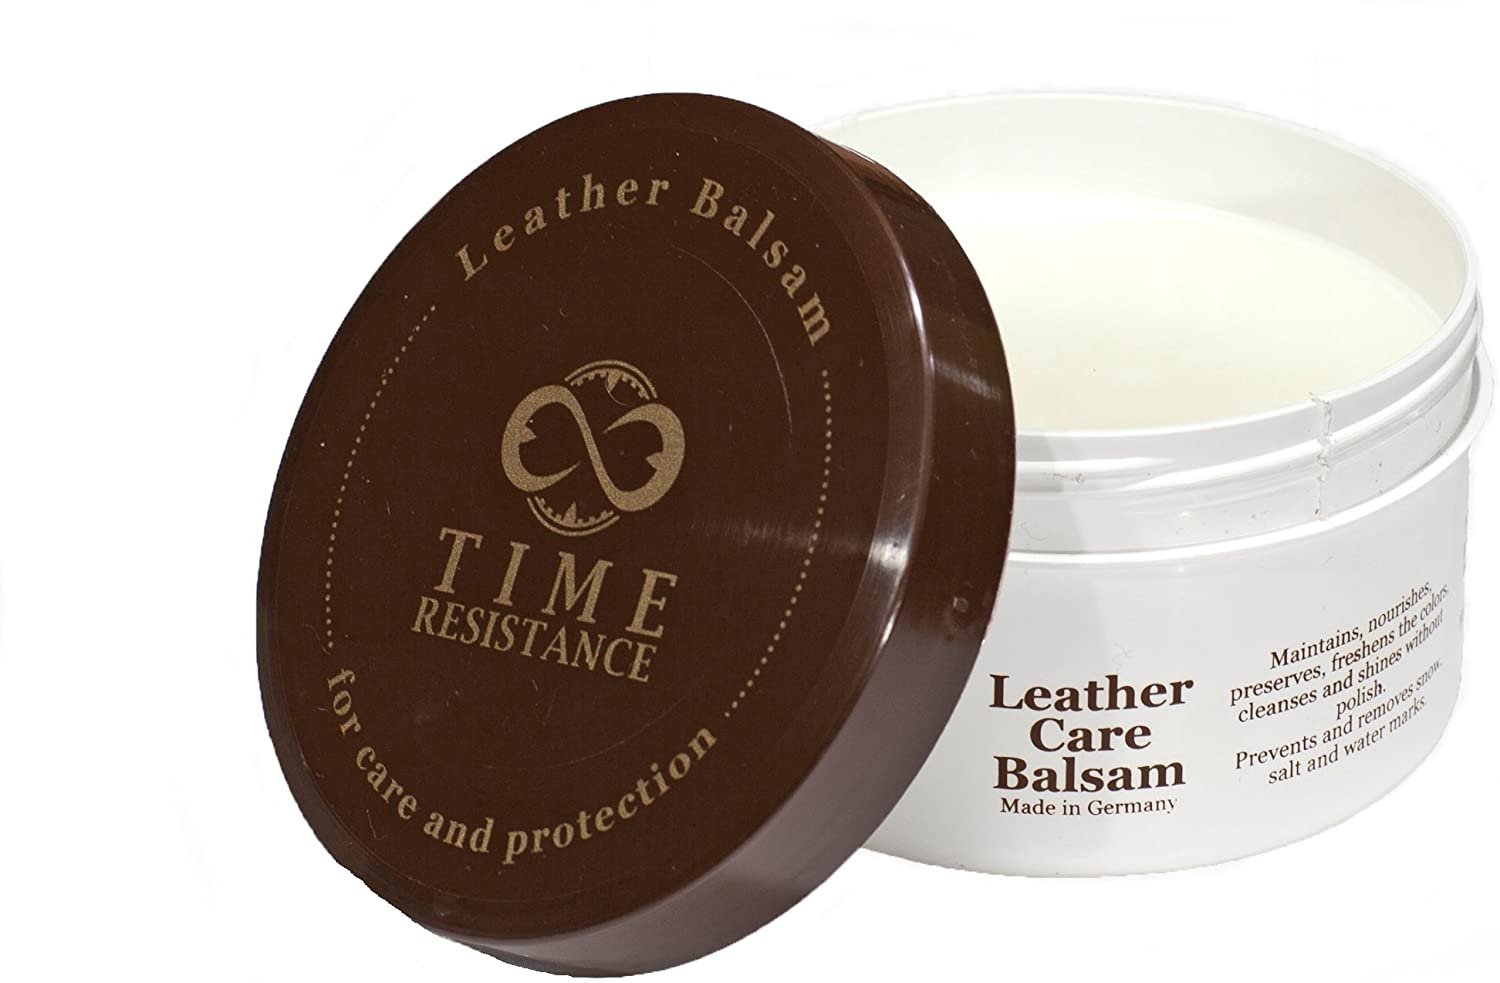 Leather Balsam for Shoes, Bags and Furniture Care and Protection - Time Resistance